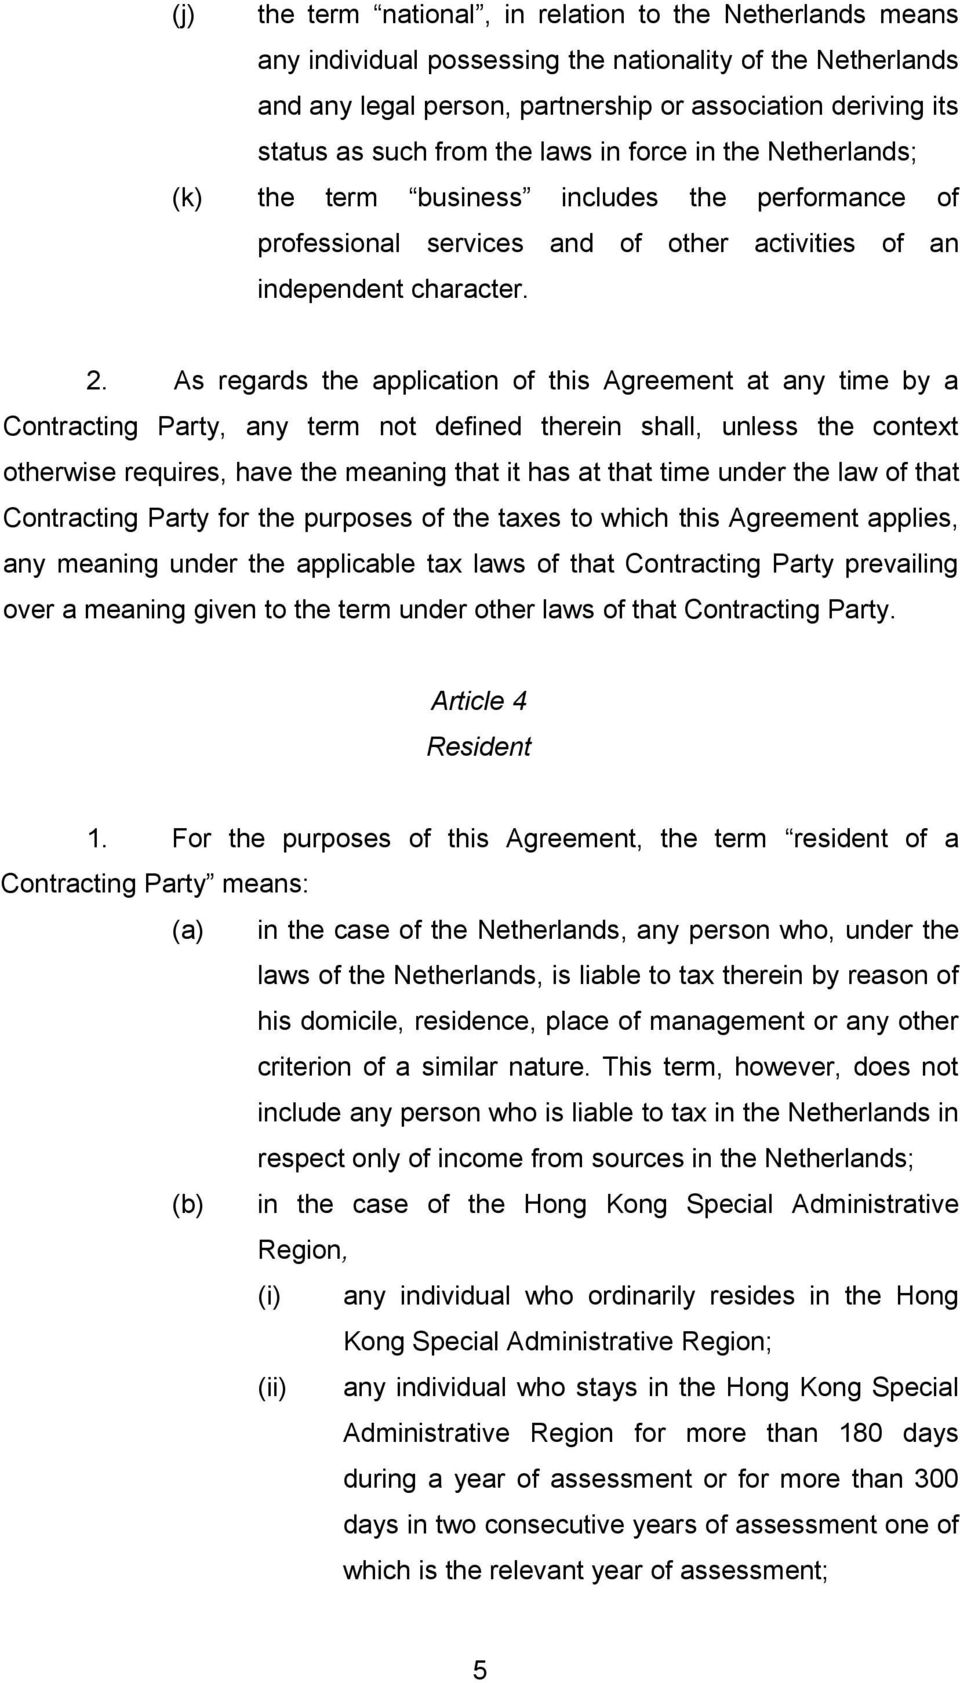 As regards the application of this Agreement at any time by a Contracting Party, any term not defined therein shall, unless the context otherwise requires, have the meaning that it has at that time